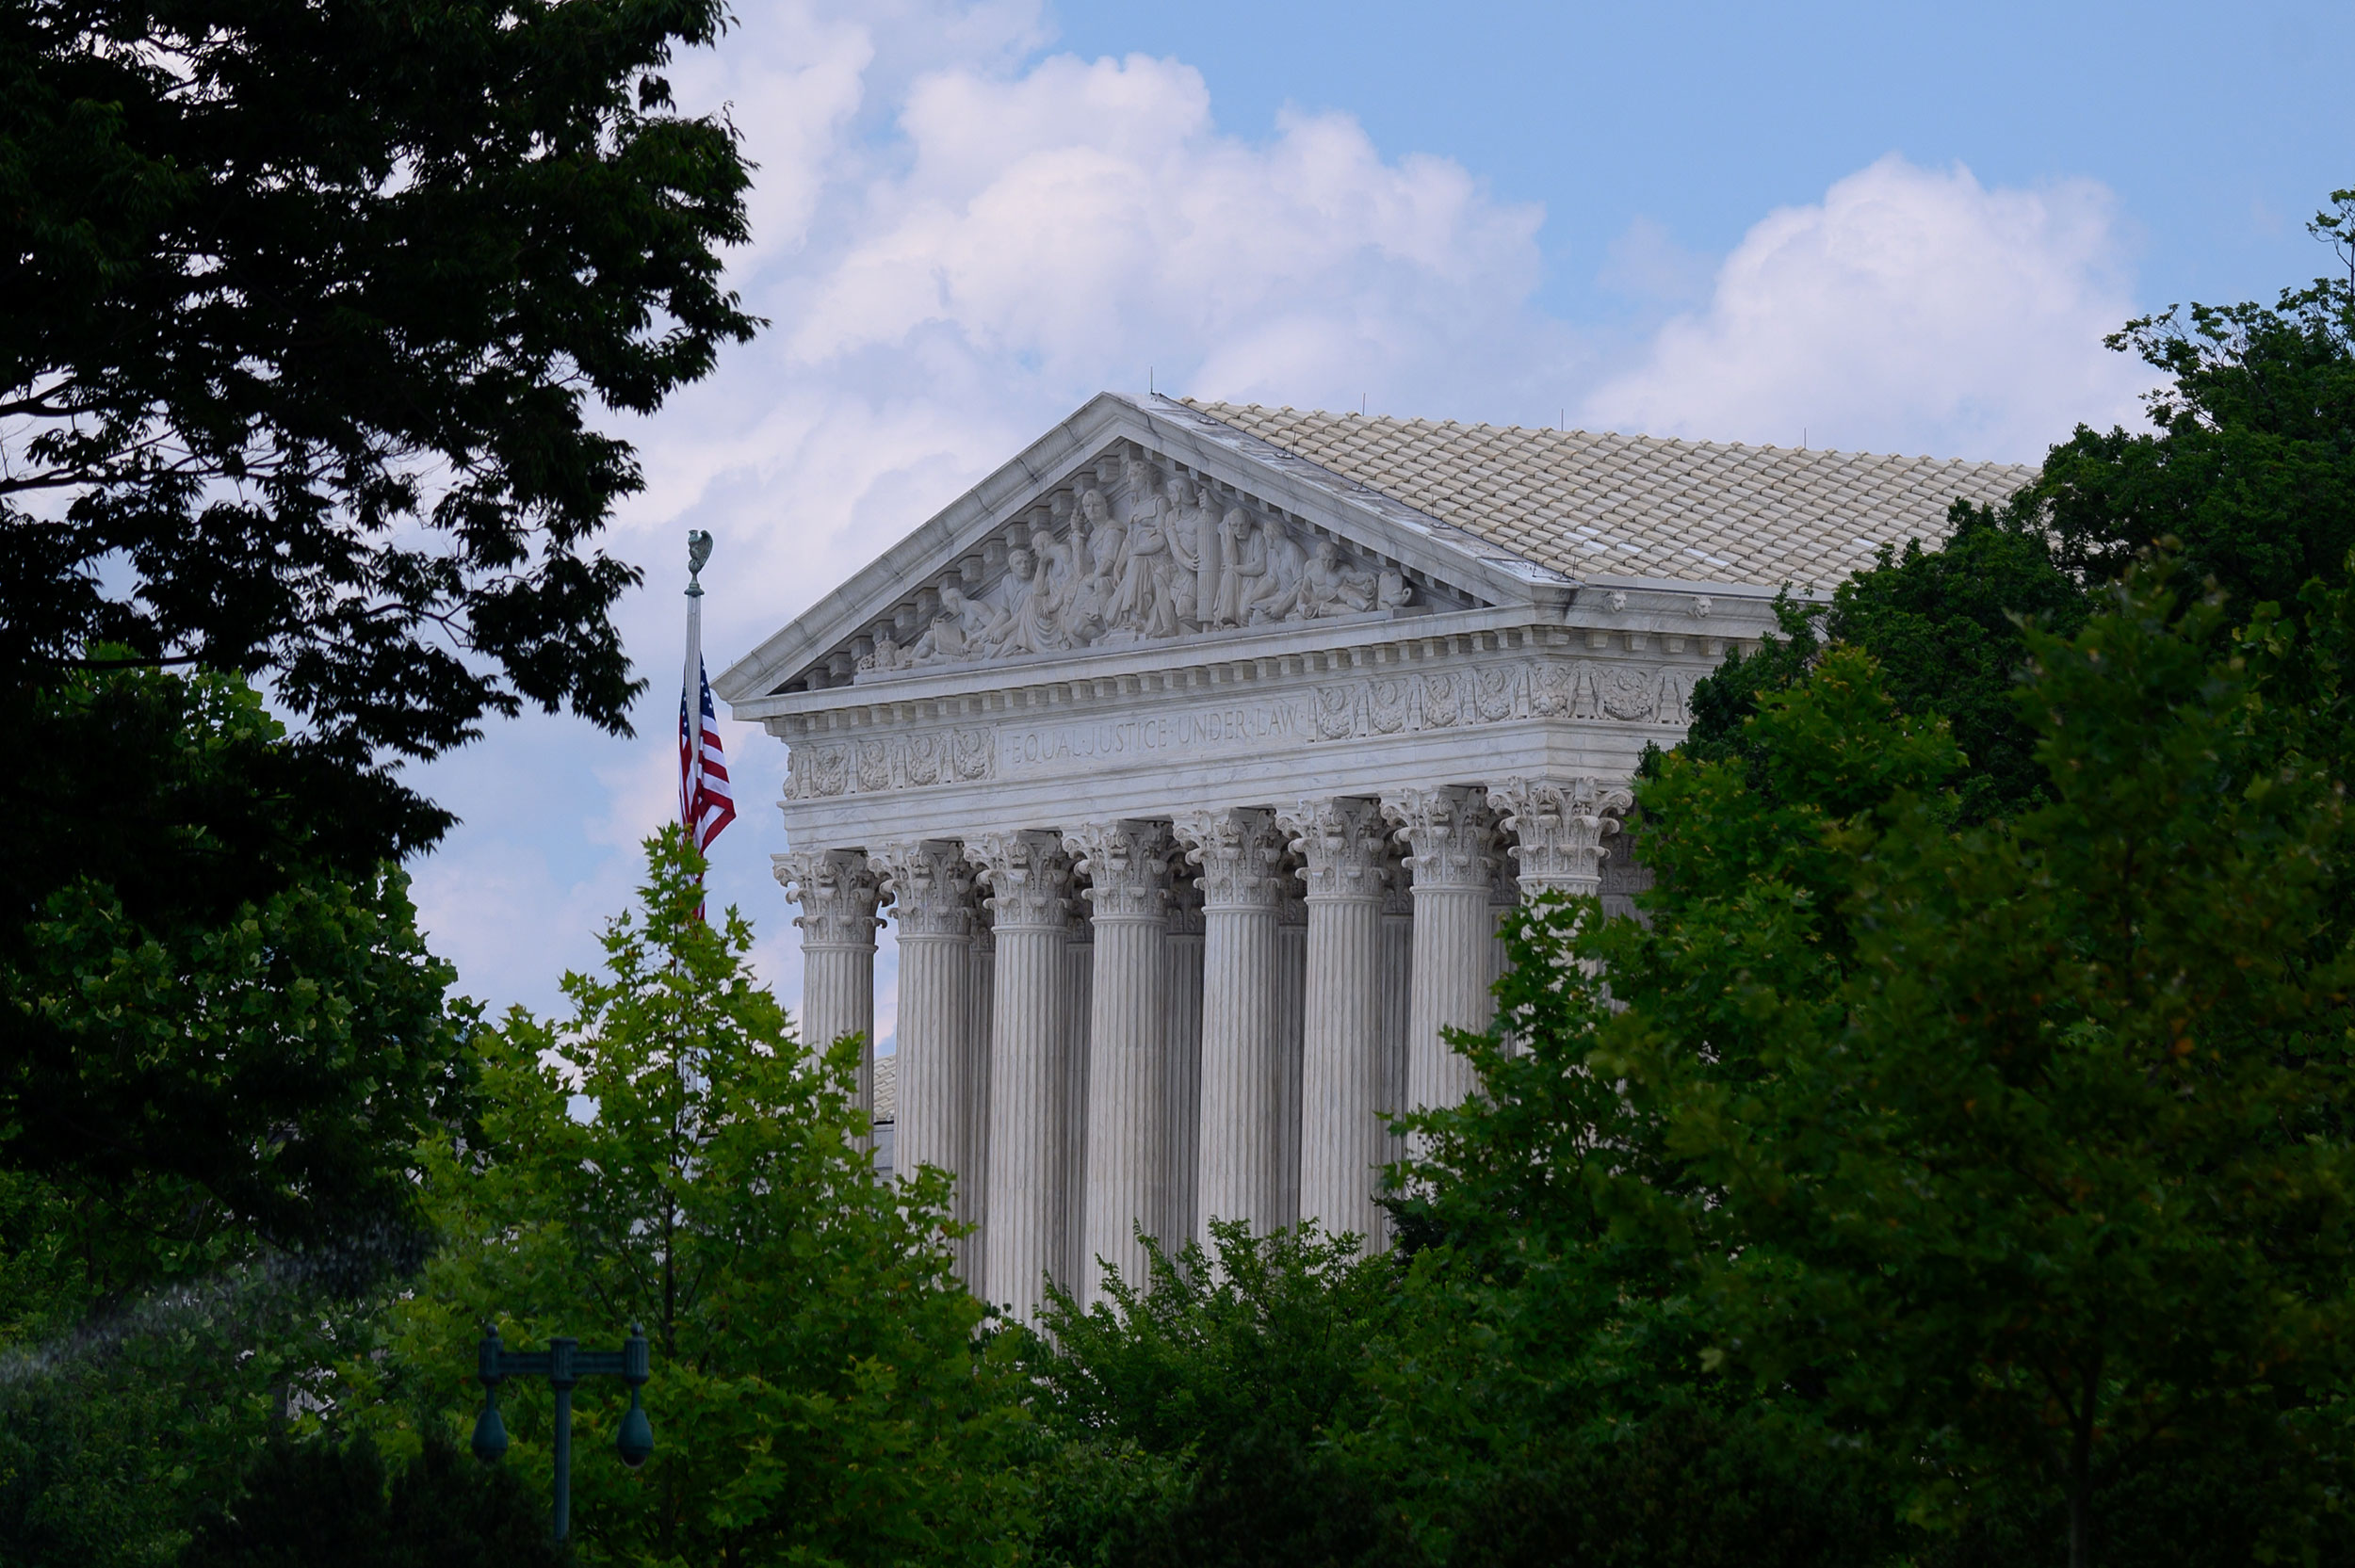 The exterior of the US Supreme Court in Washington, DC.